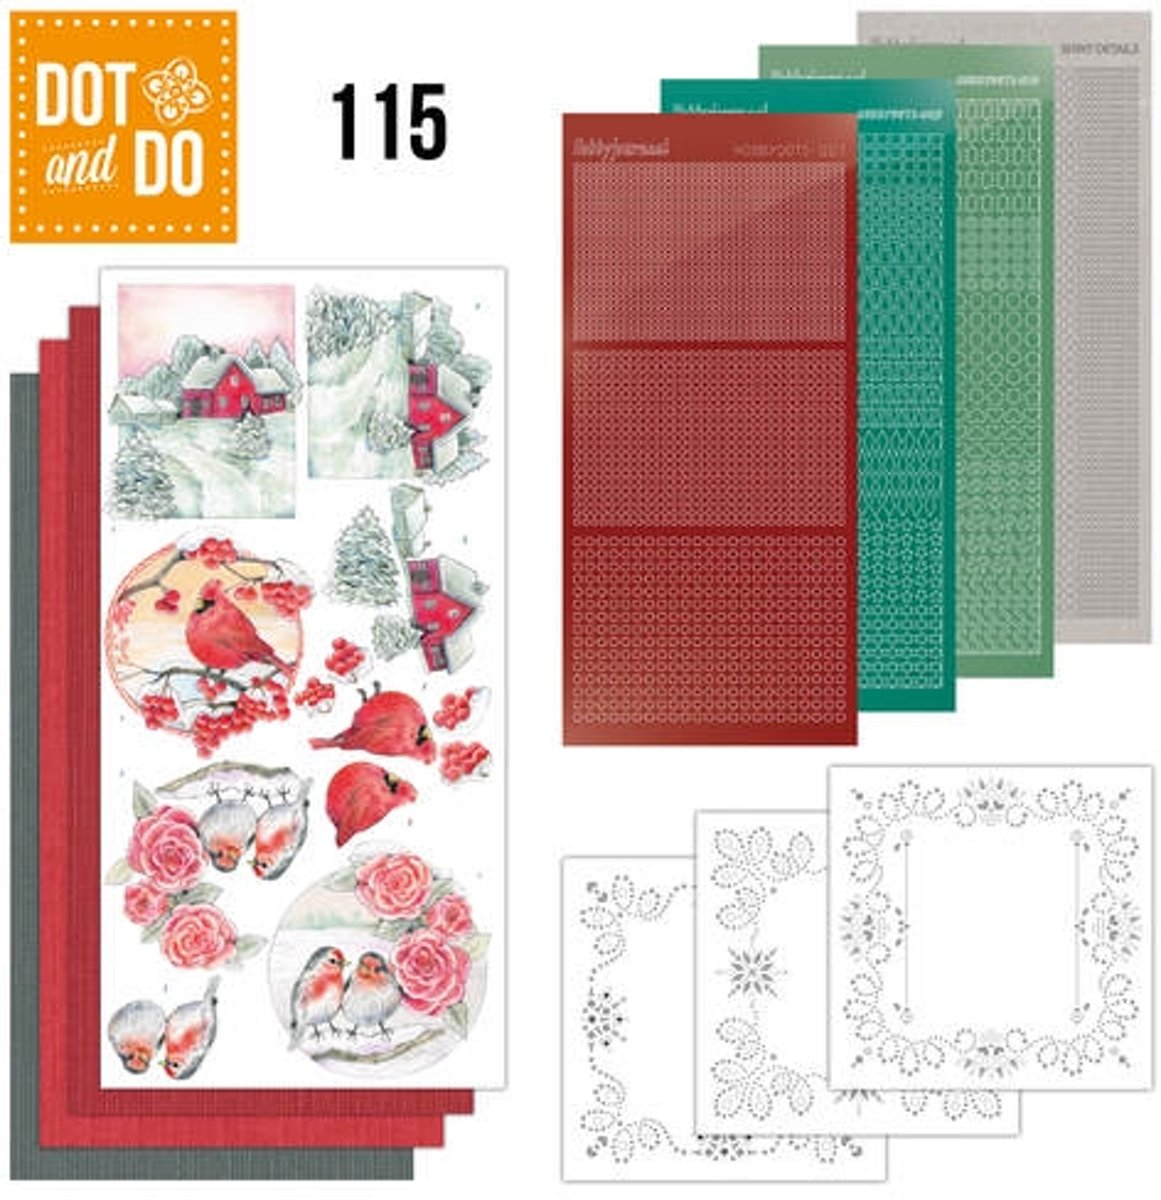 Dot and Do 115 Jeaniness Art - Winter Classics